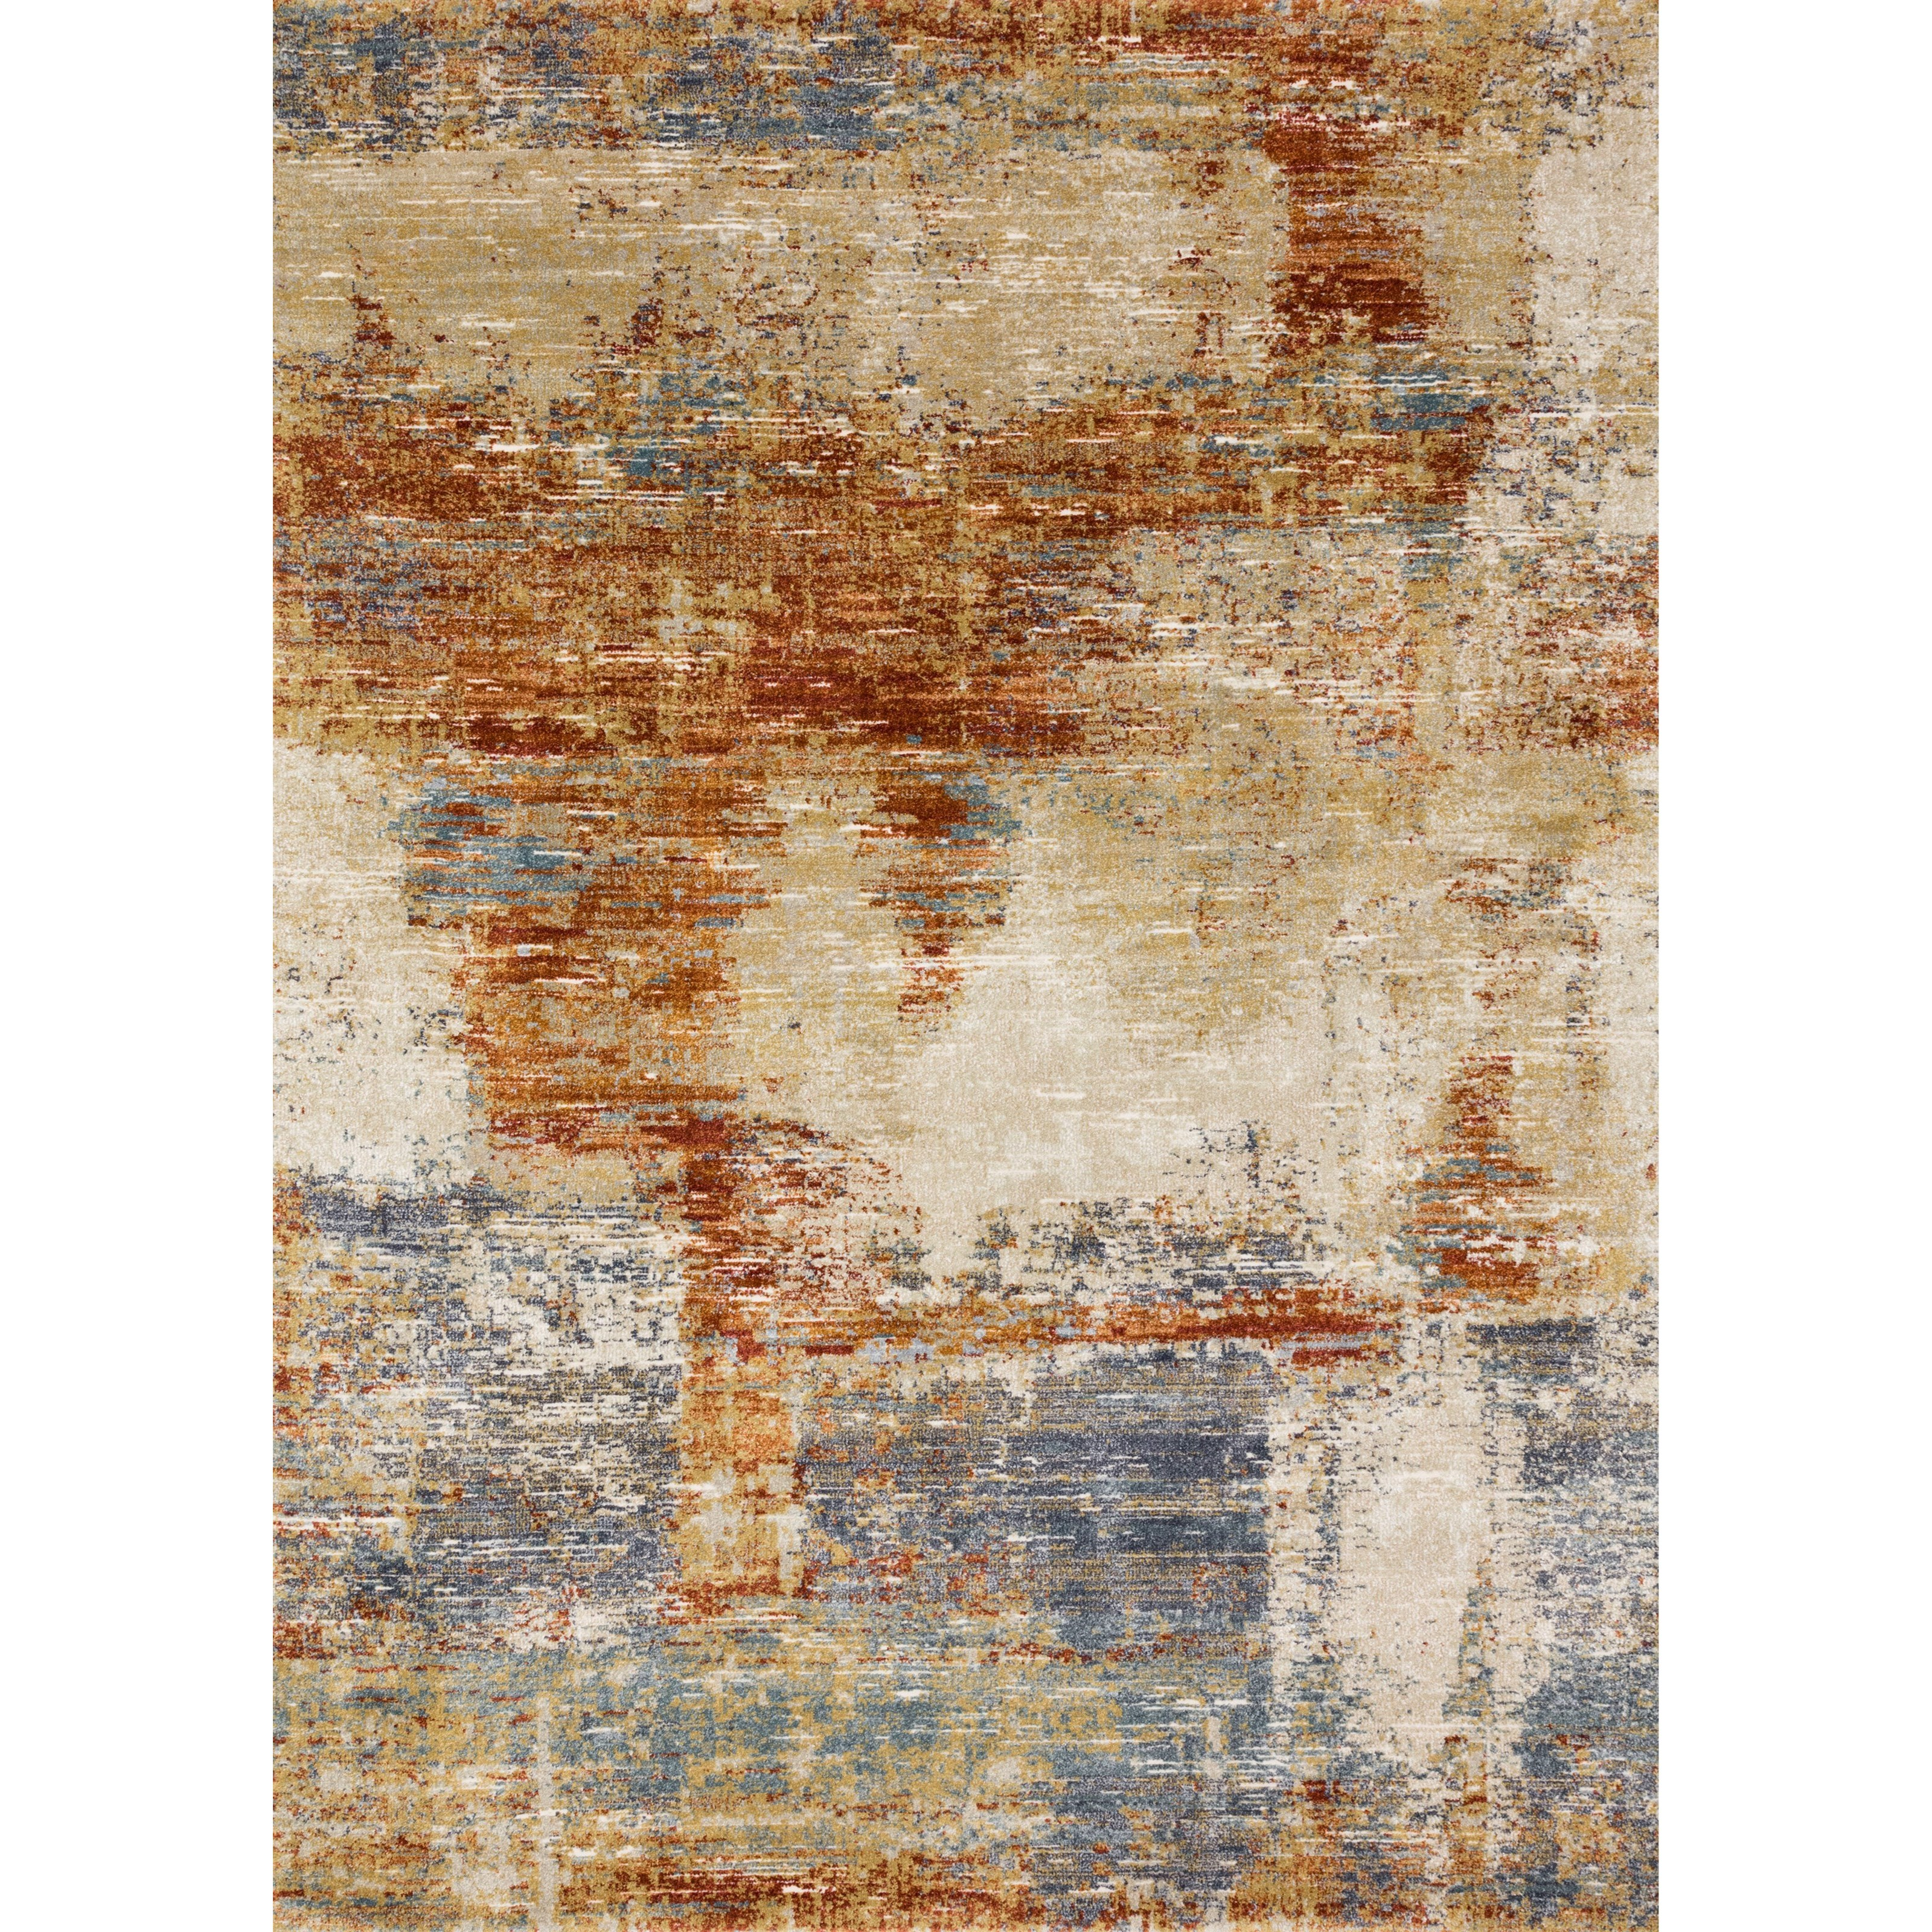 "Augustus 2'7"" x 4' Terracotta Rug by Loloi Rugs at Virginia Furniture Market"